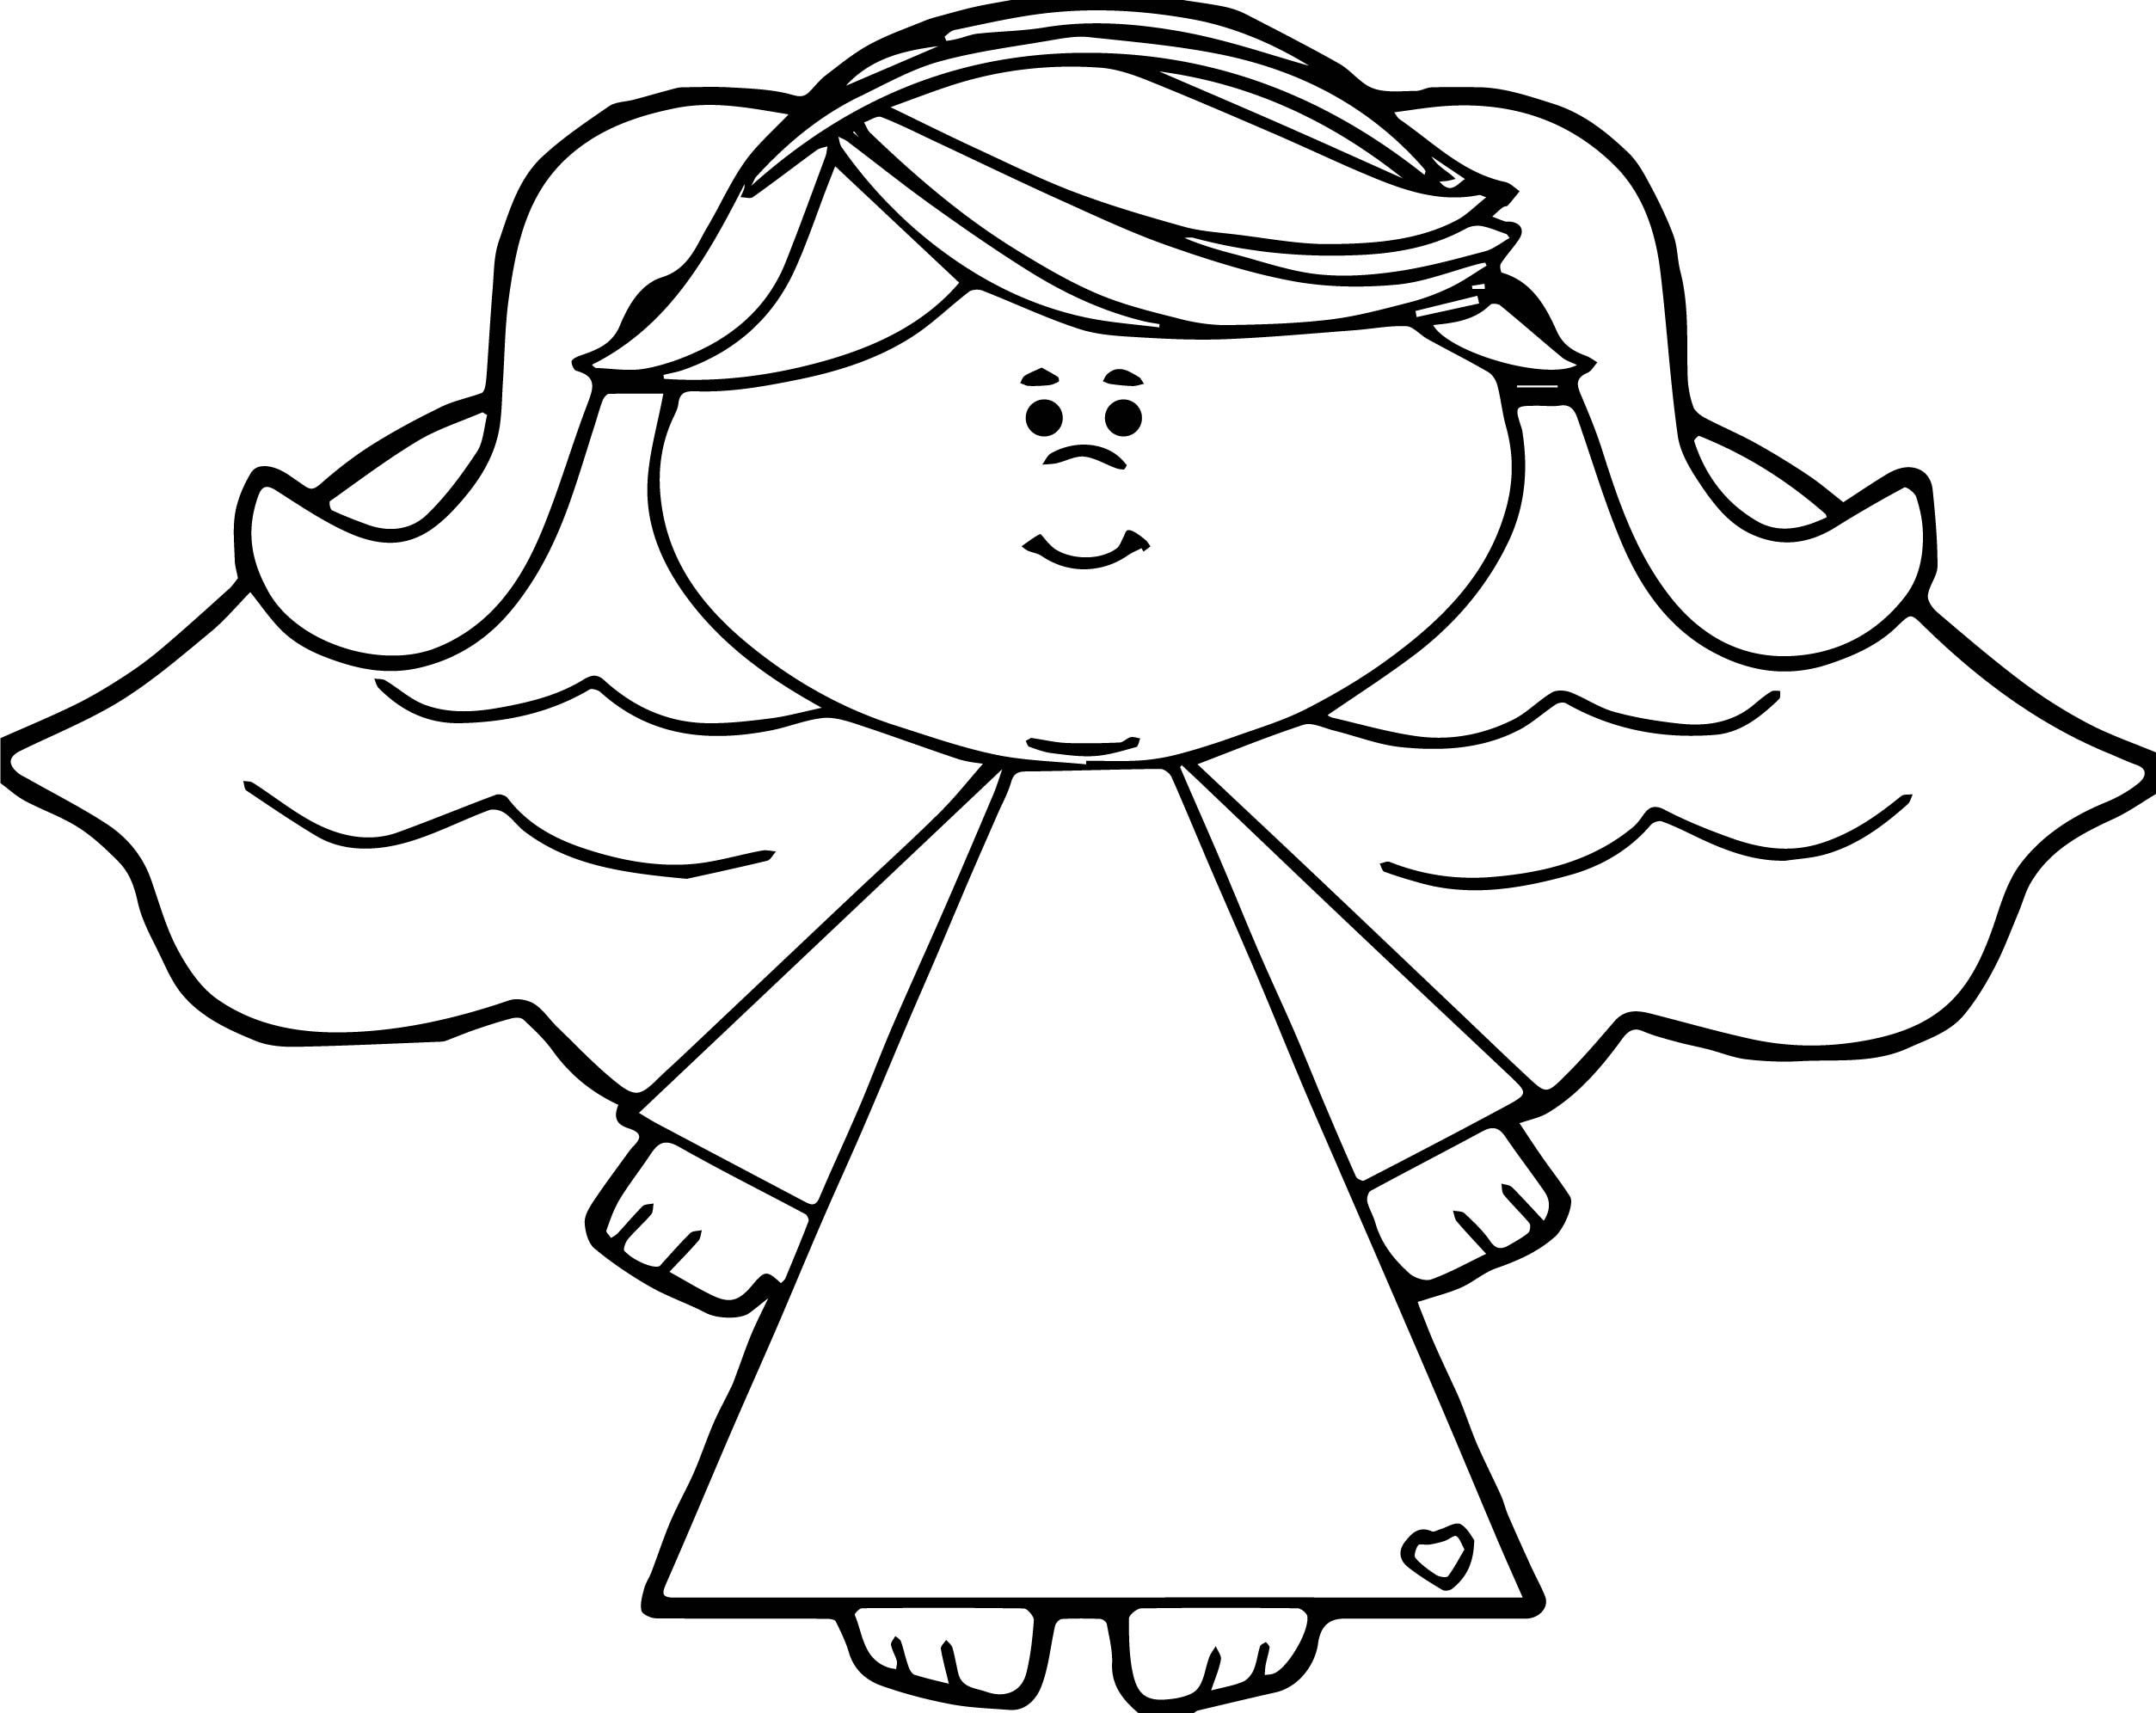 Black Angel Coloring Page